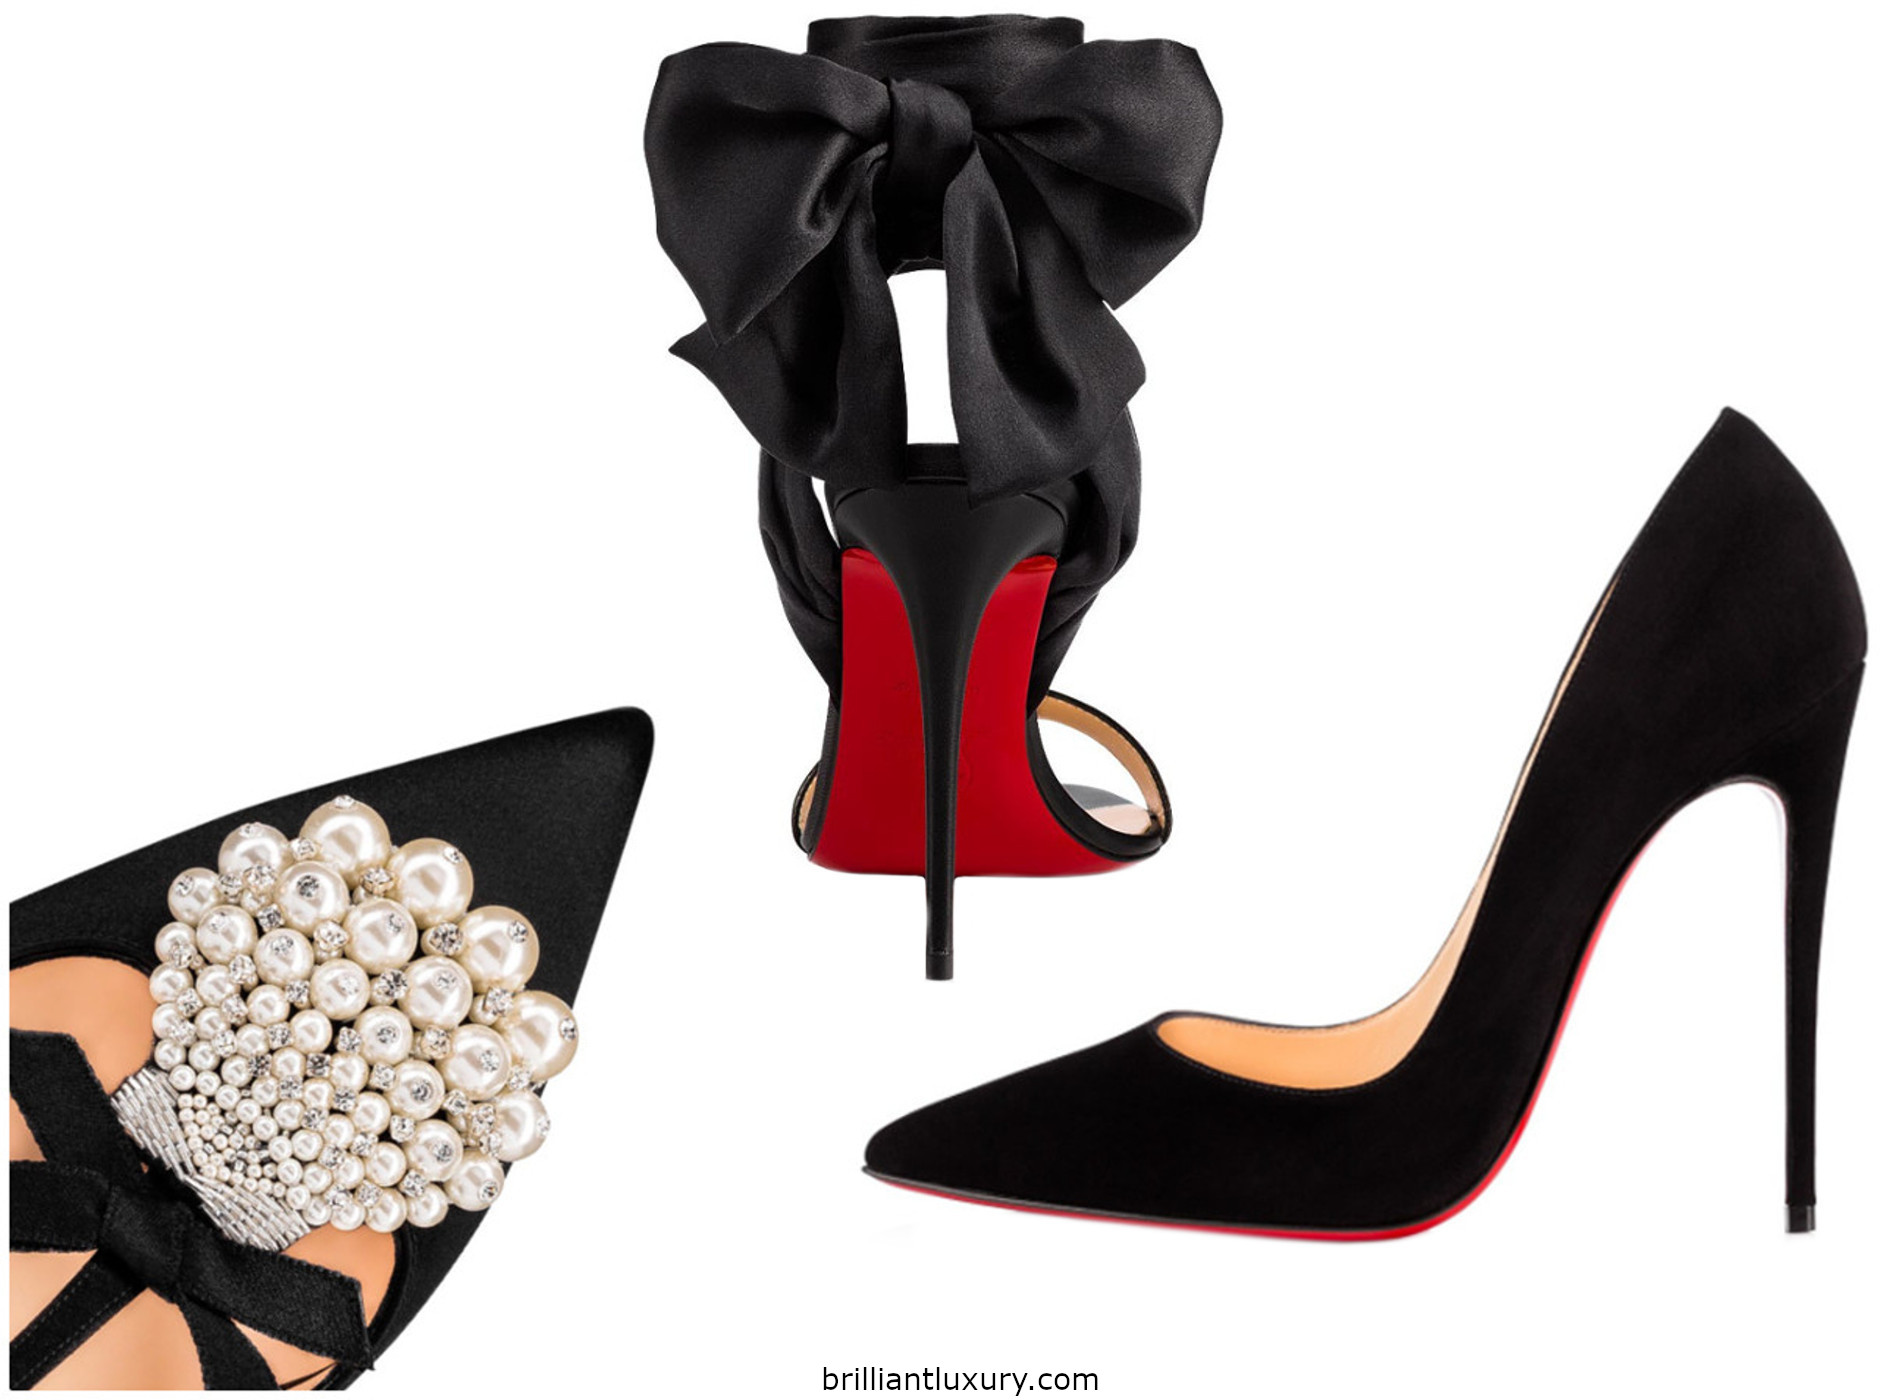 Brilliant Luxury Black Pumps